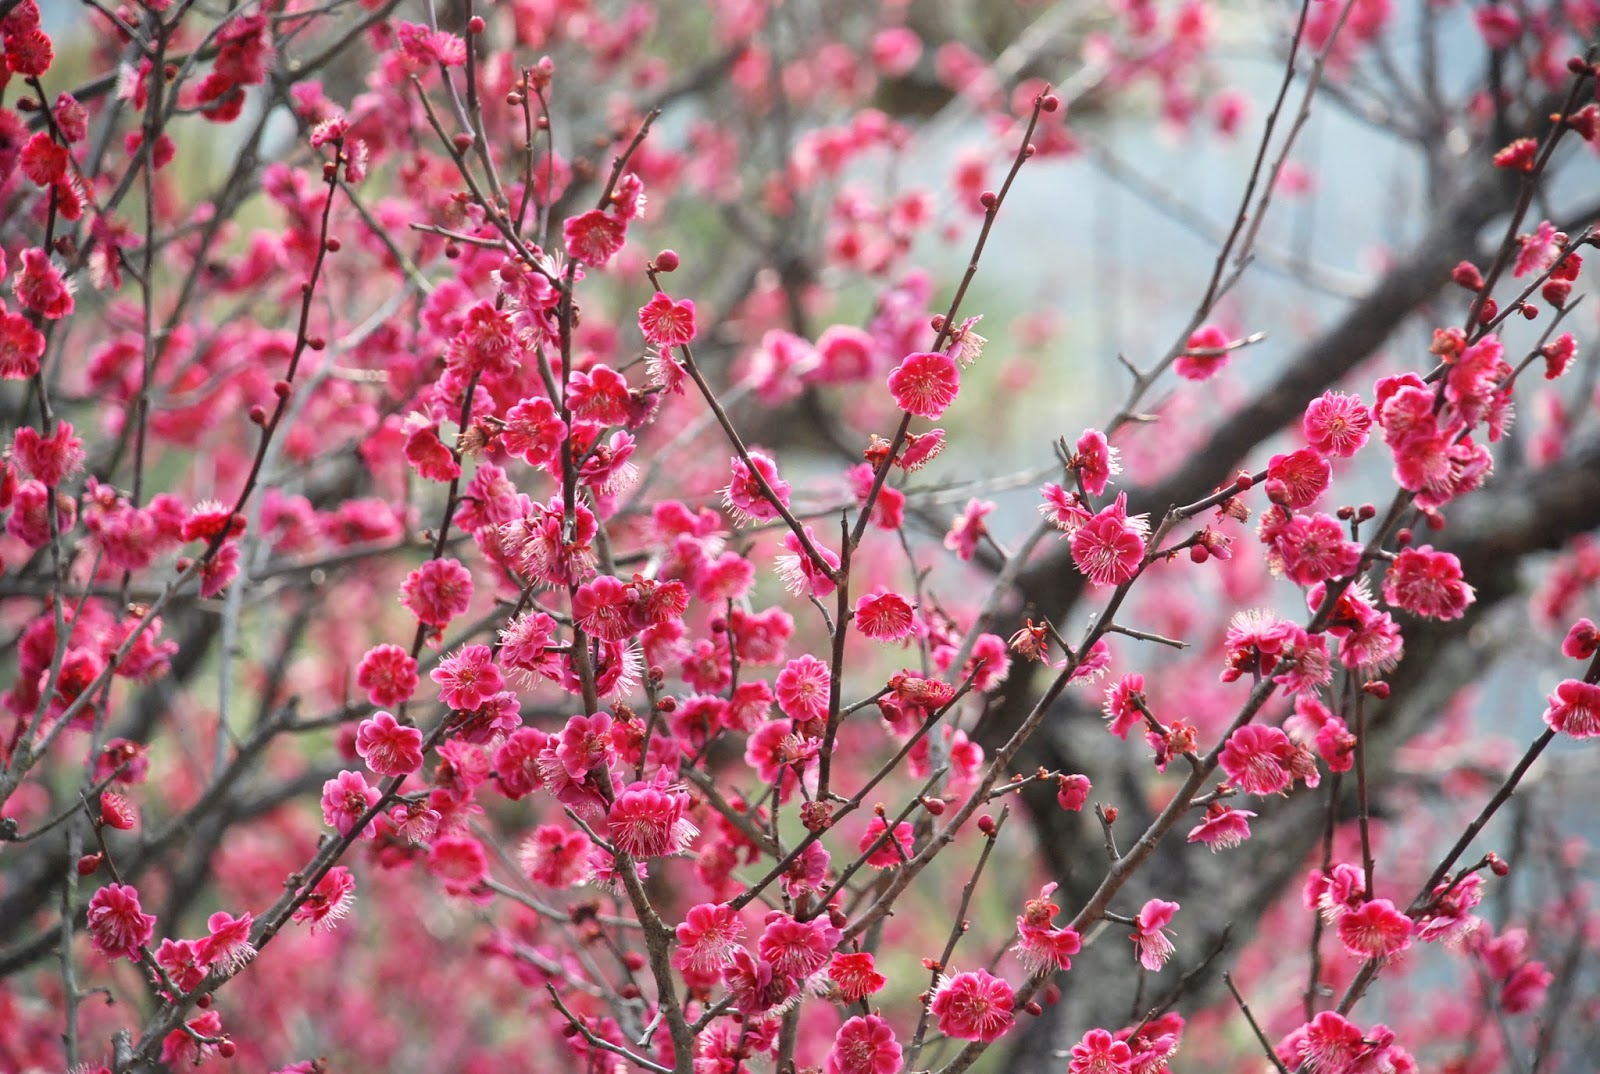 Is This Cherry Blossom Identify Early Flowering Trees Coffee Milk Tea